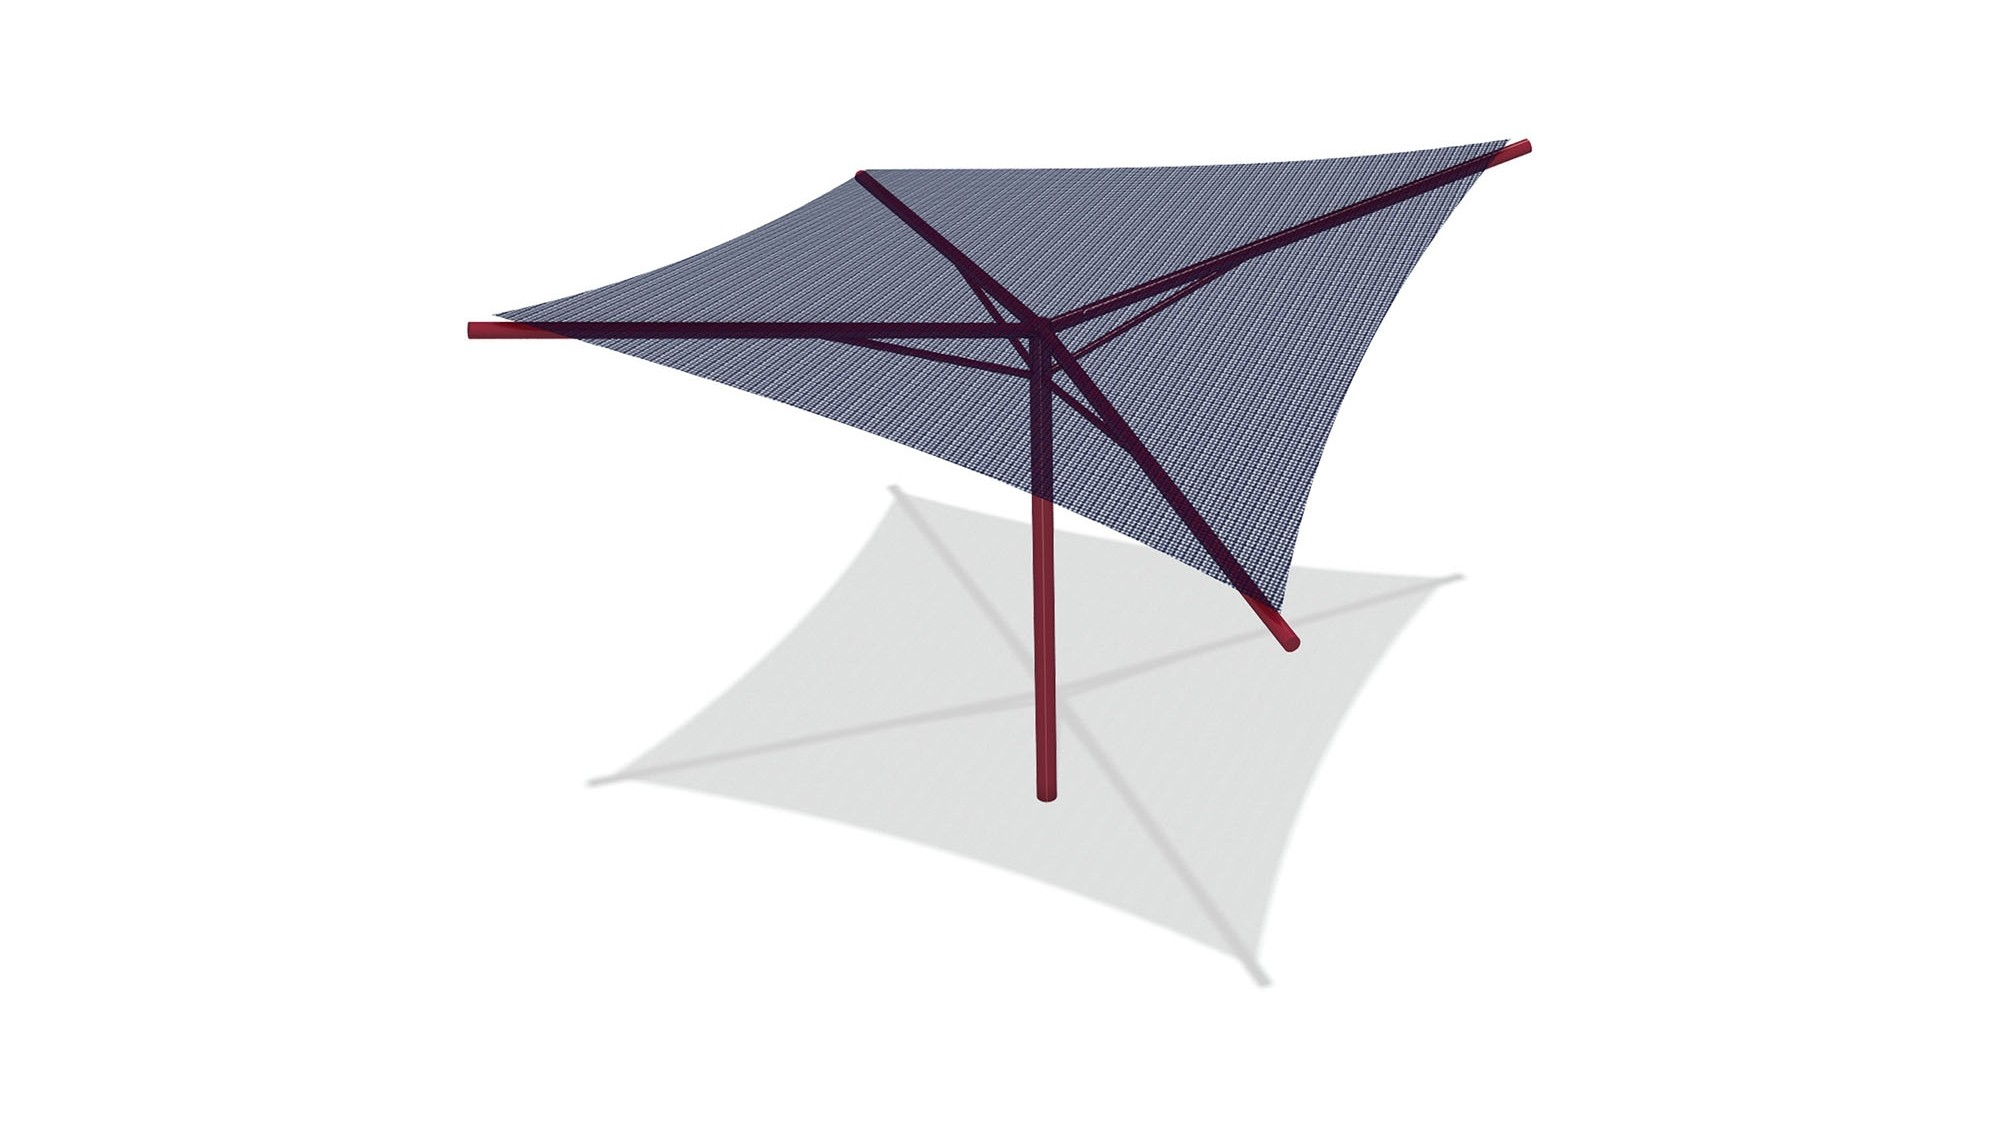 Hyperbolic Umbrella Shade - 14' x 14' x 10' High